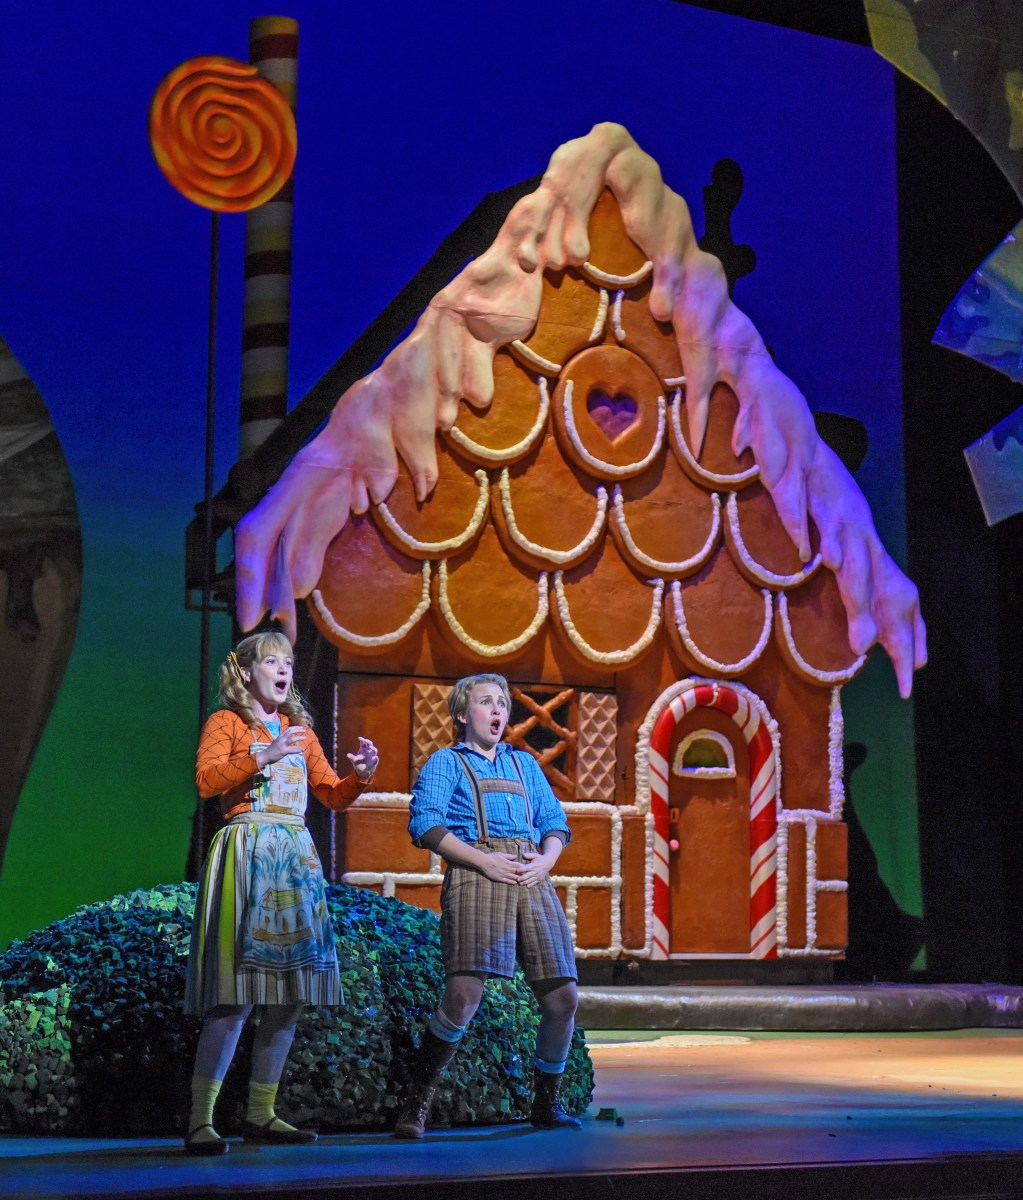 LA Opera presents : Hansel and Gretel @ Dorothy Chandler Pavilion in Downtown Los Angeles  - Review